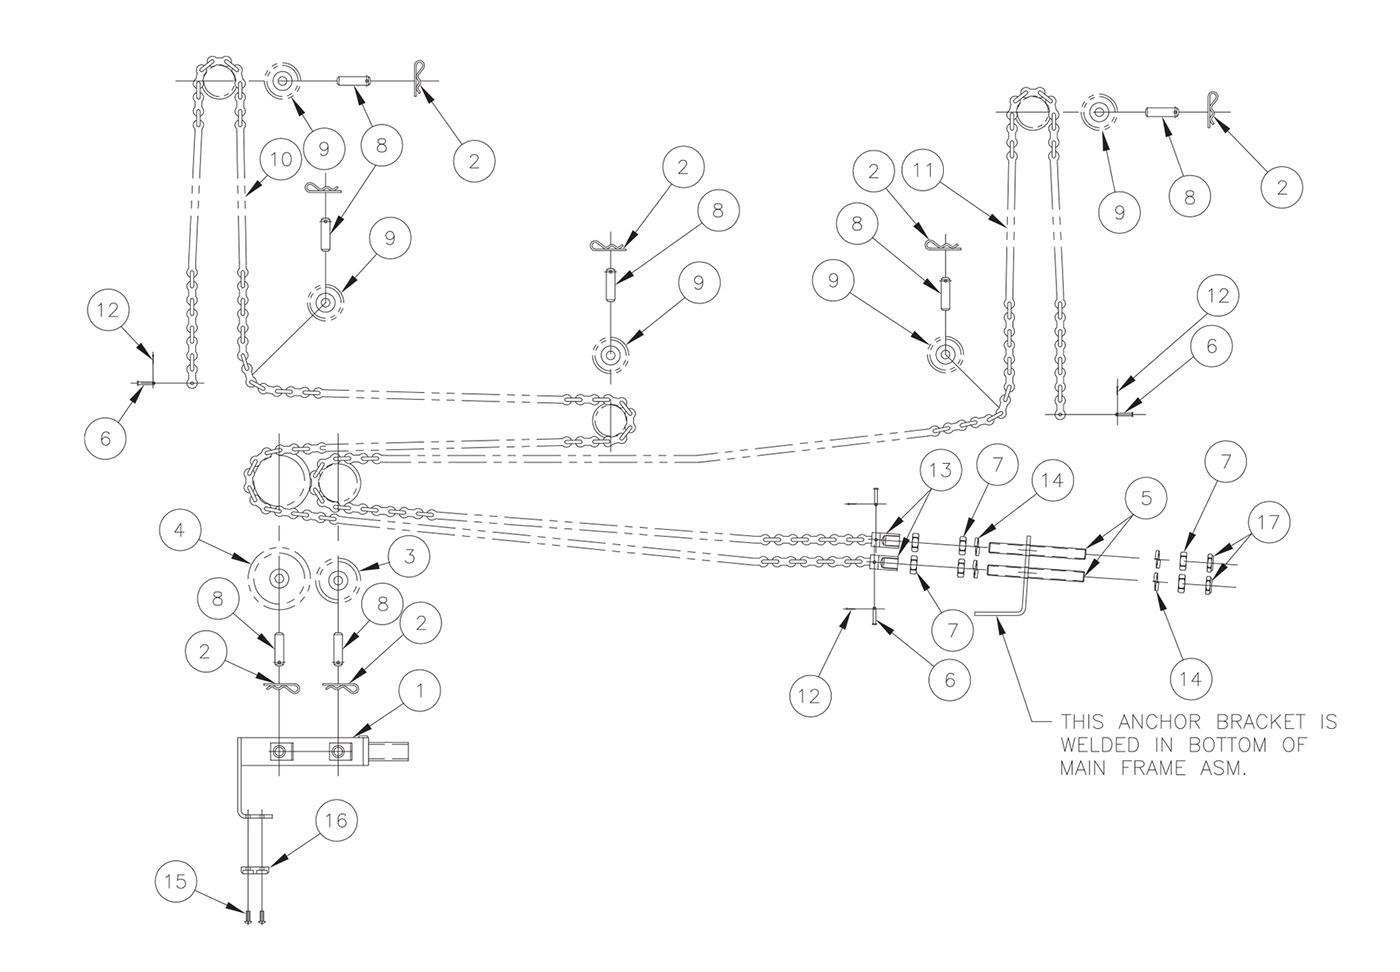 TVLR 30/30A Lifting Chain Assembly Diagram